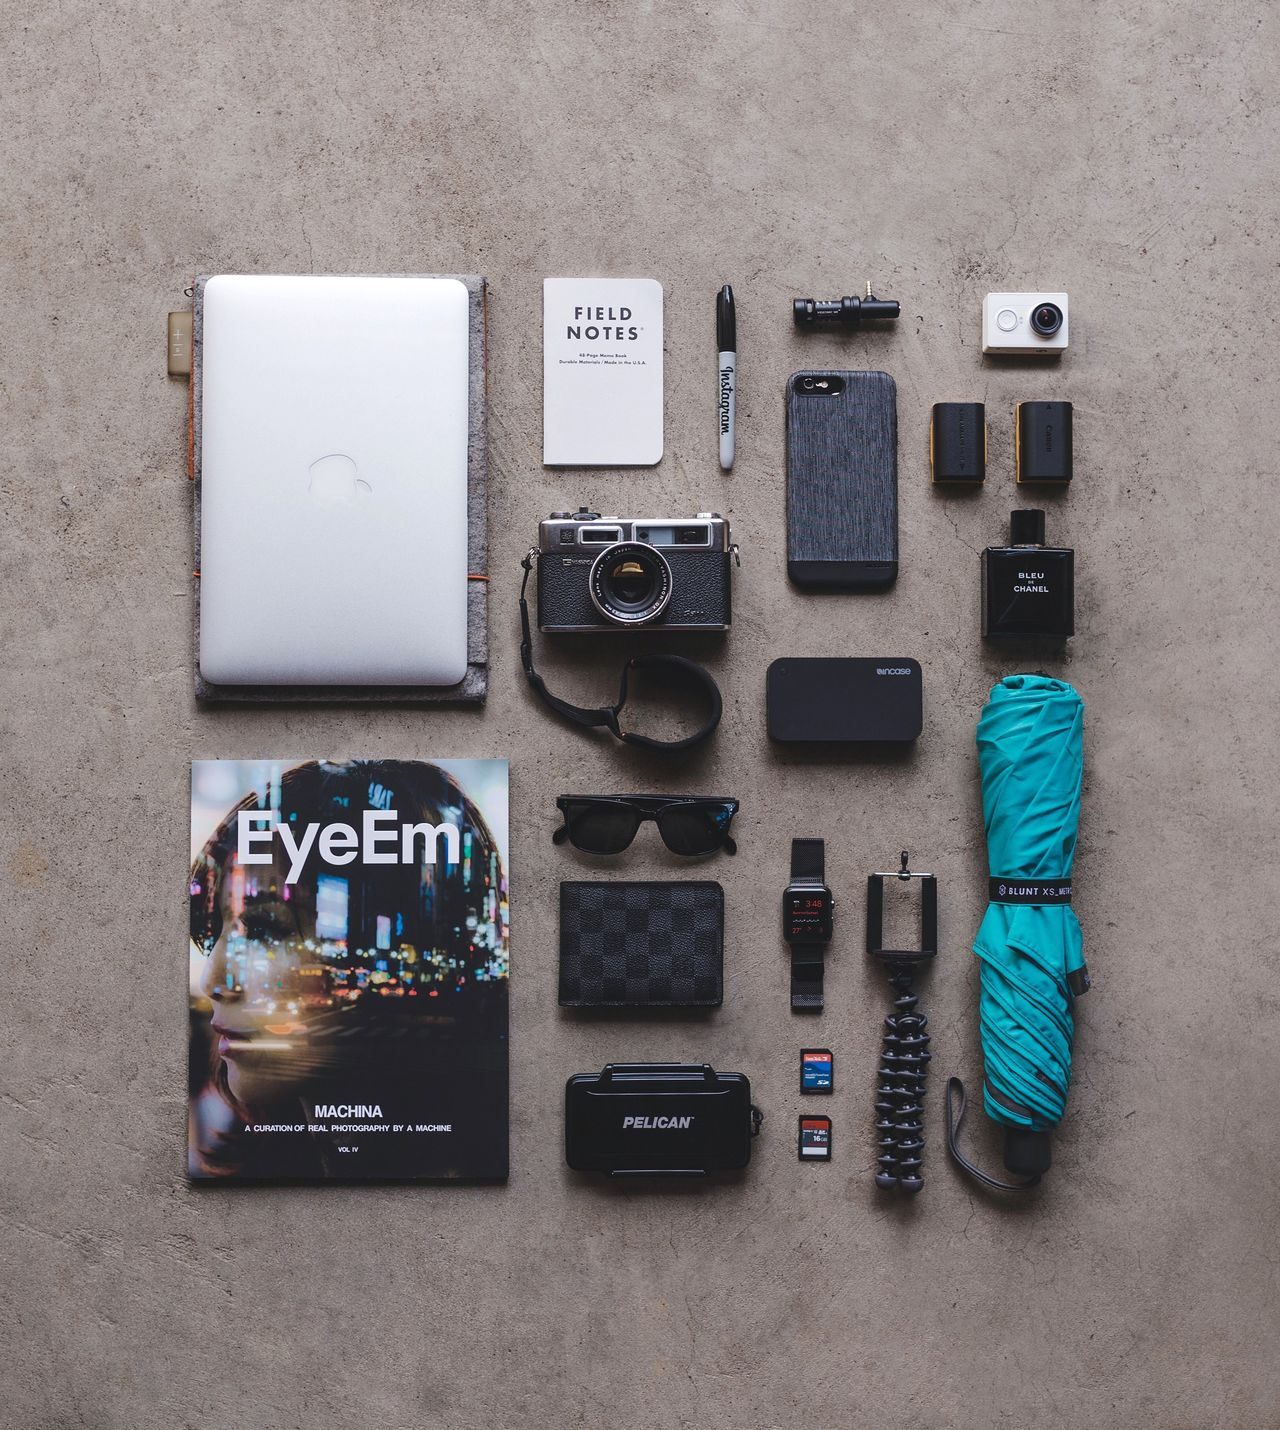 Beautifully Organized Directly Above Collection No People Variation Choice Technology Day Flat Lay Flatlay Travelling Home For The Holidays Traveling Home For The Holidays